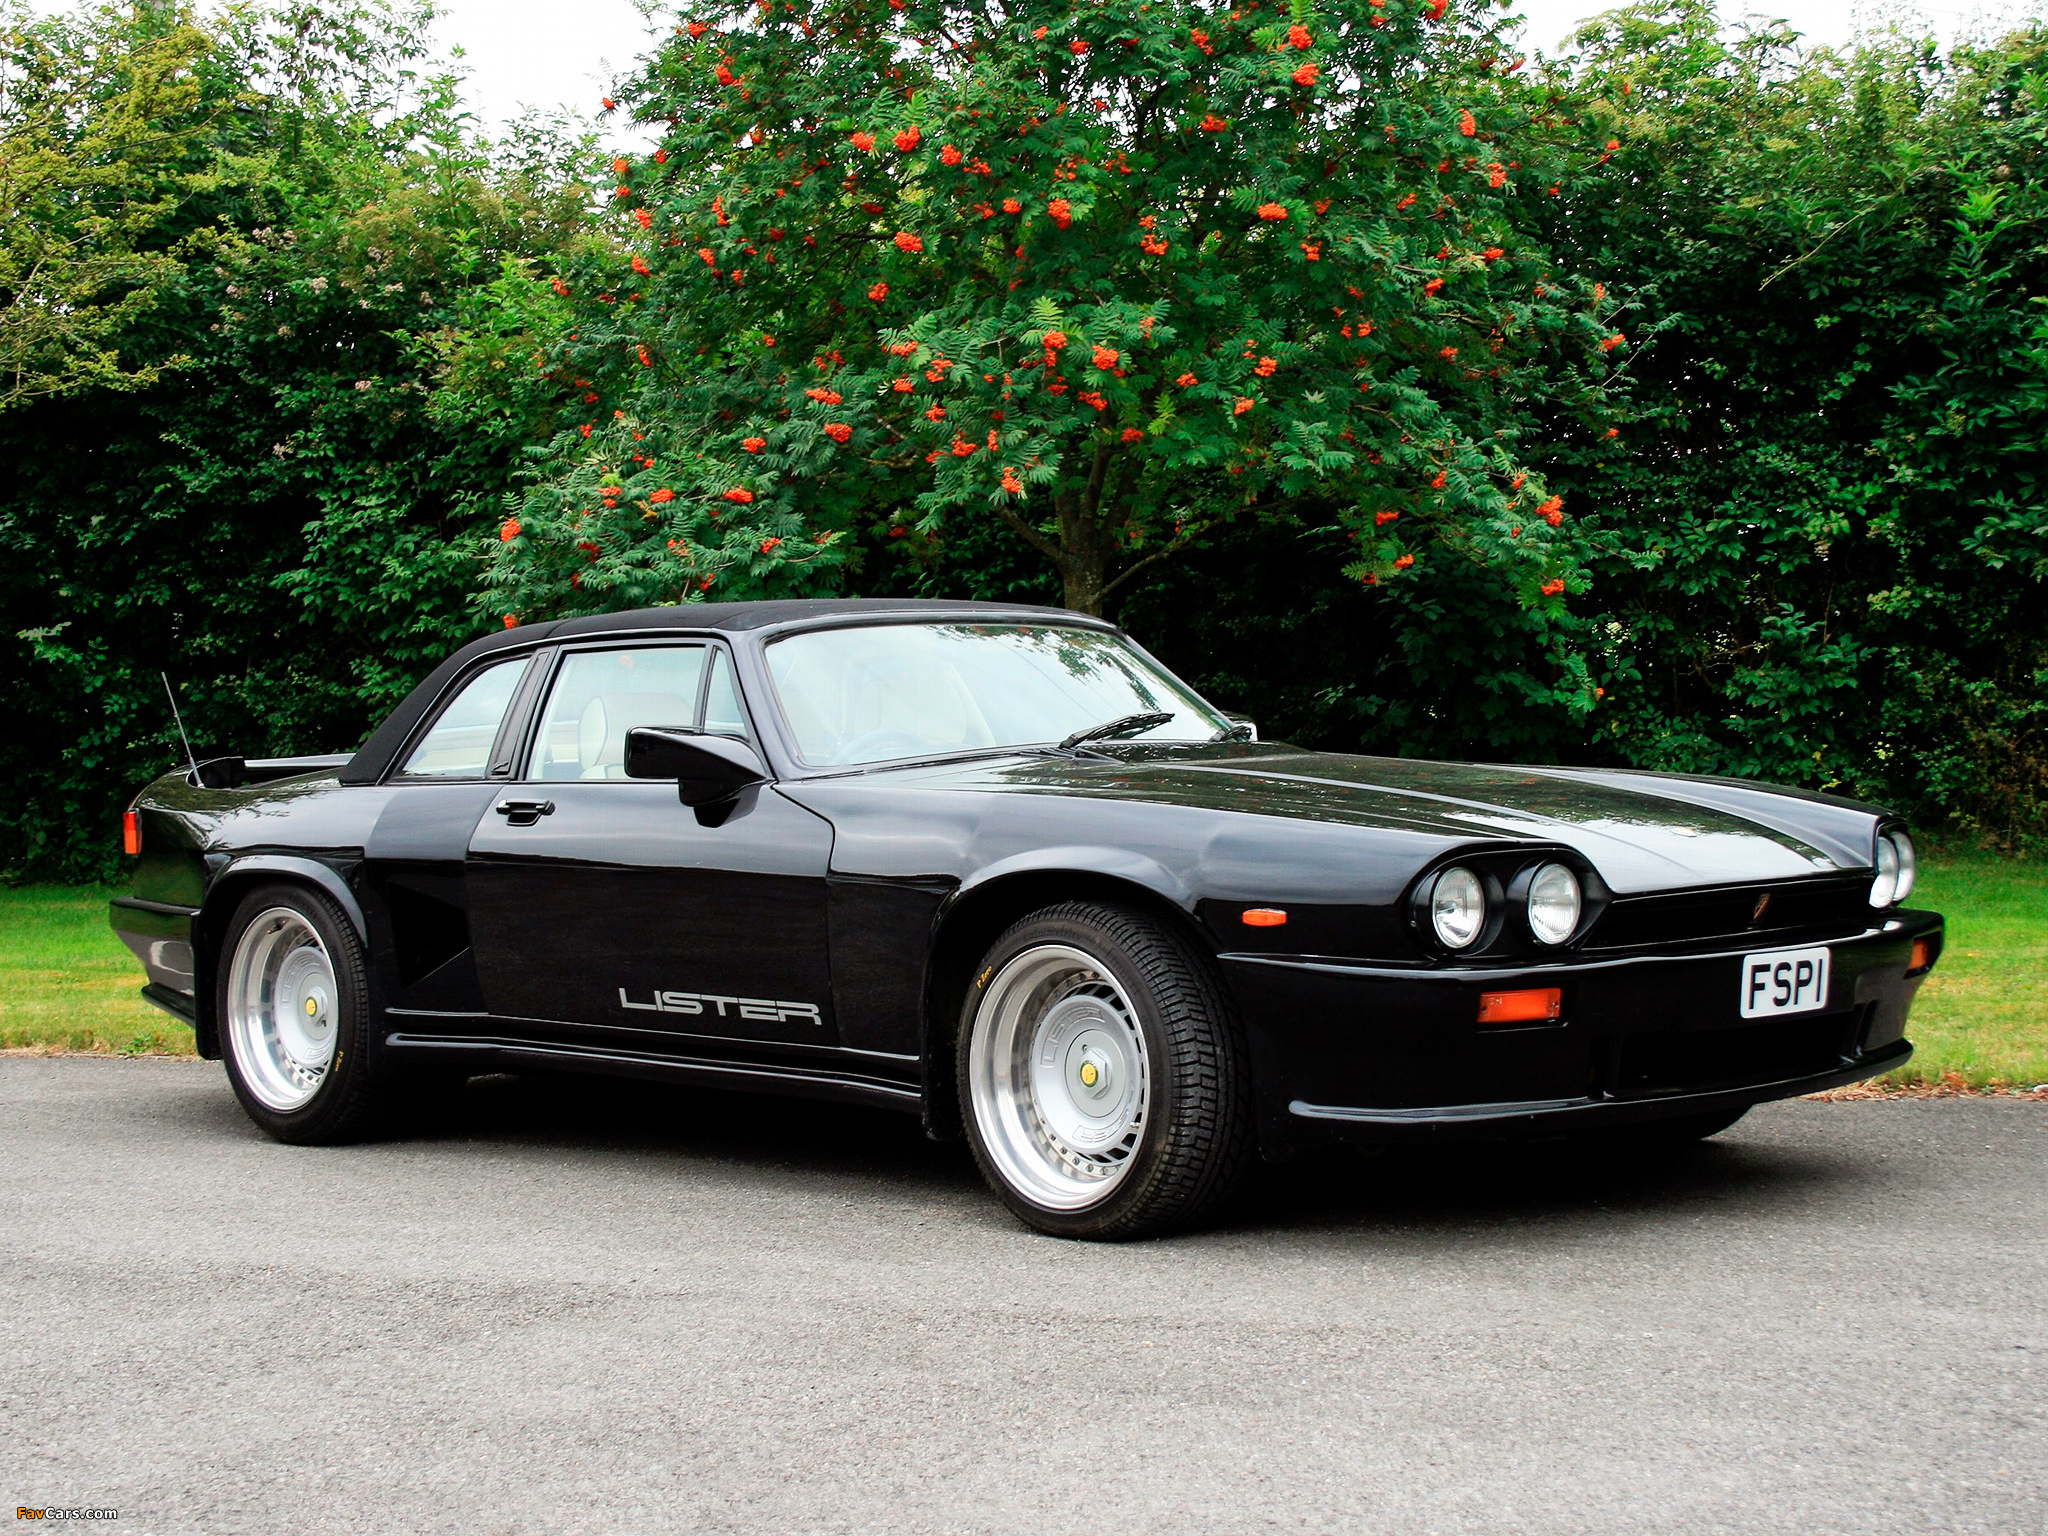 jaguar xjs wallpaper #14